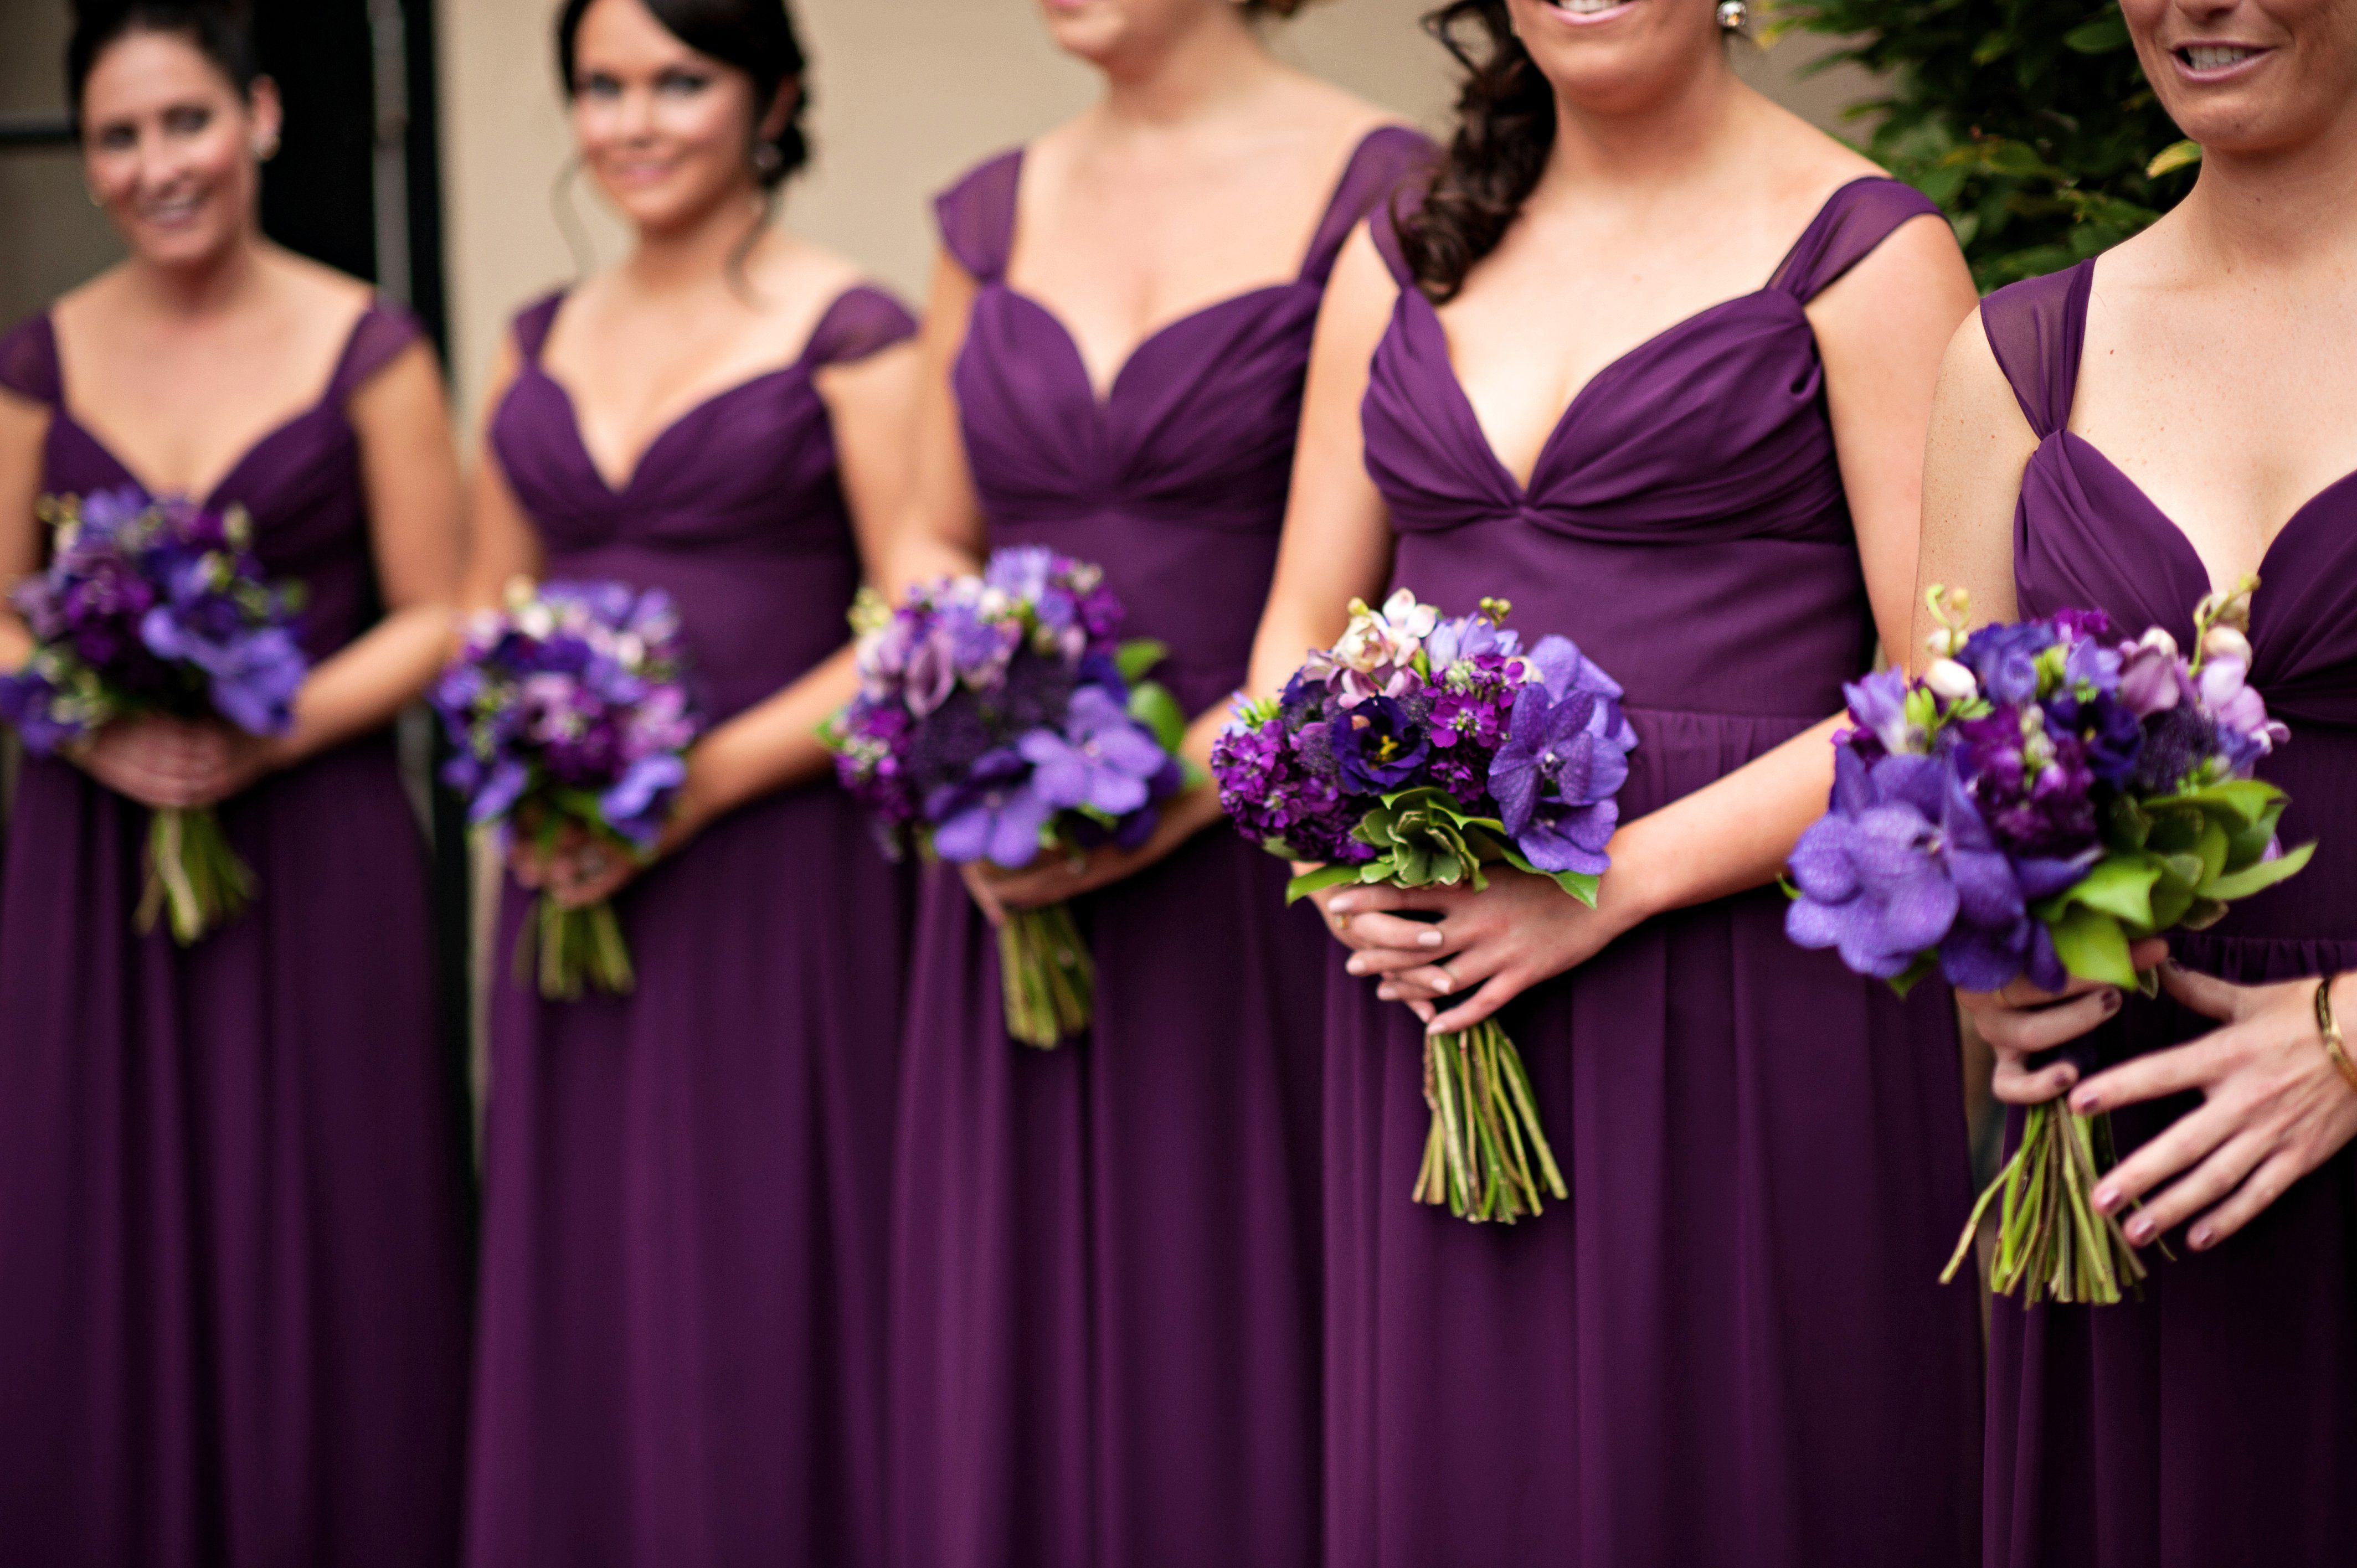 The combination of the violet bridesmaid dresses and their bouquets ...